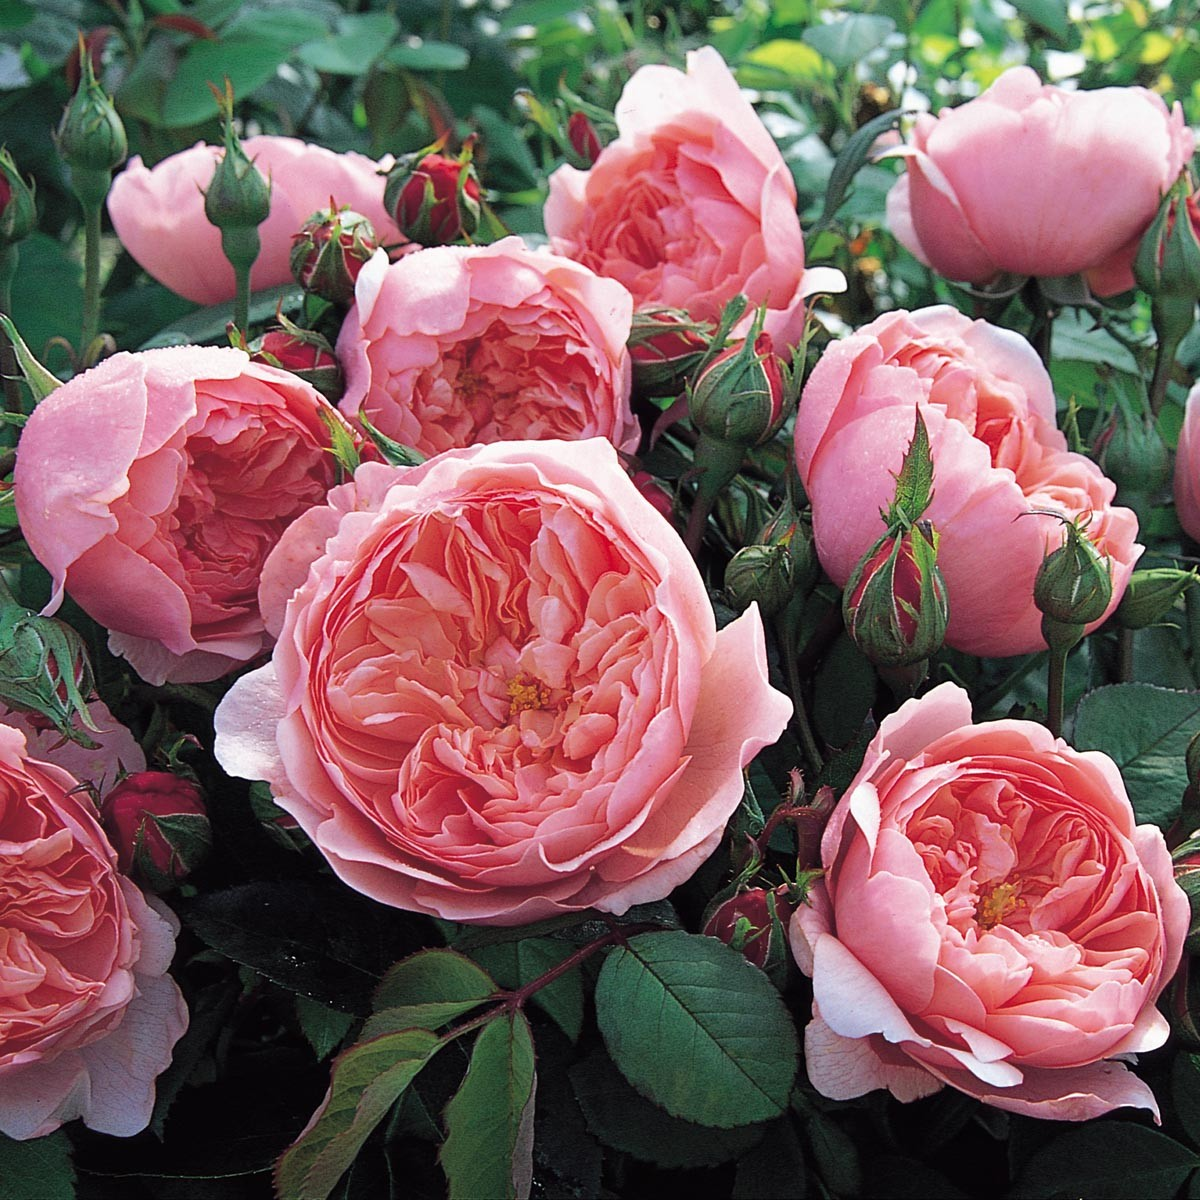 Alnwick Rose - Just loved the look and color of these blooms!Purchase here.